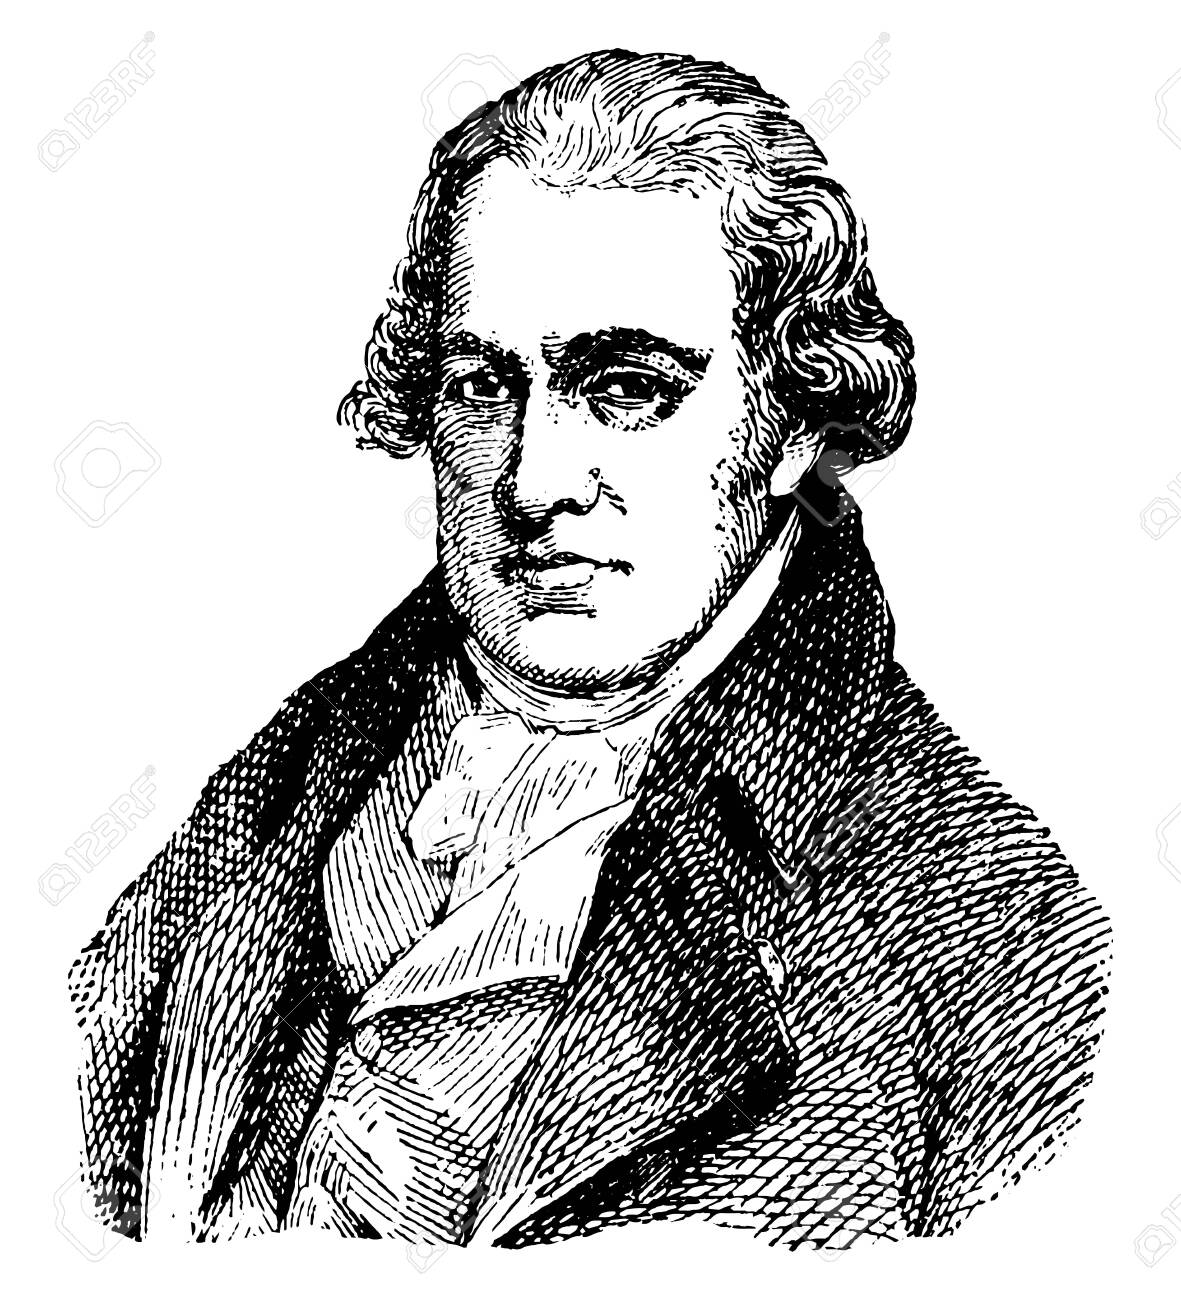 James Watt, 1736-1819, he was a Scottish inventor, mechanical engineer, and chemist, vintage line drawing or engraving illustration - 133425799